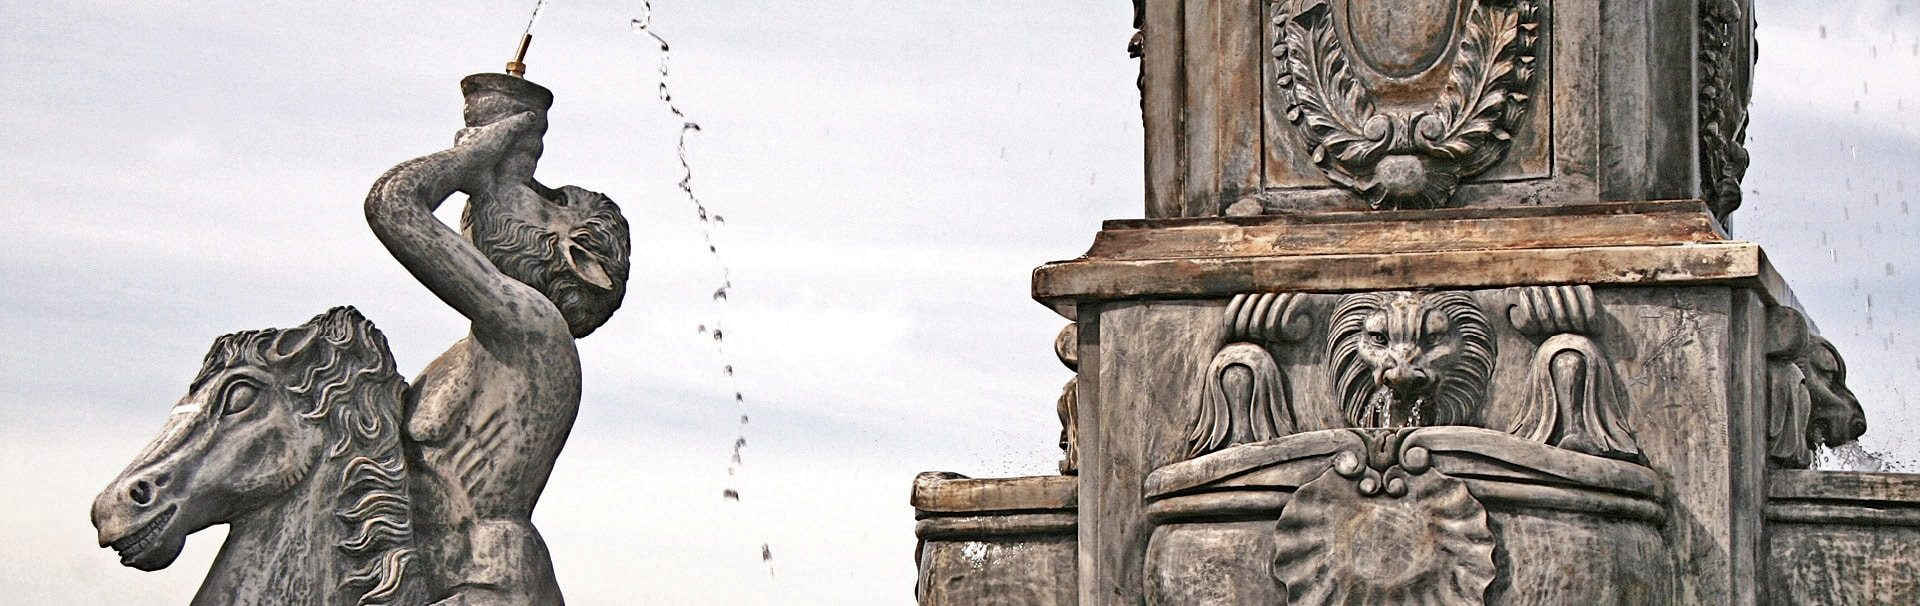 handcarved stone statuary fountain